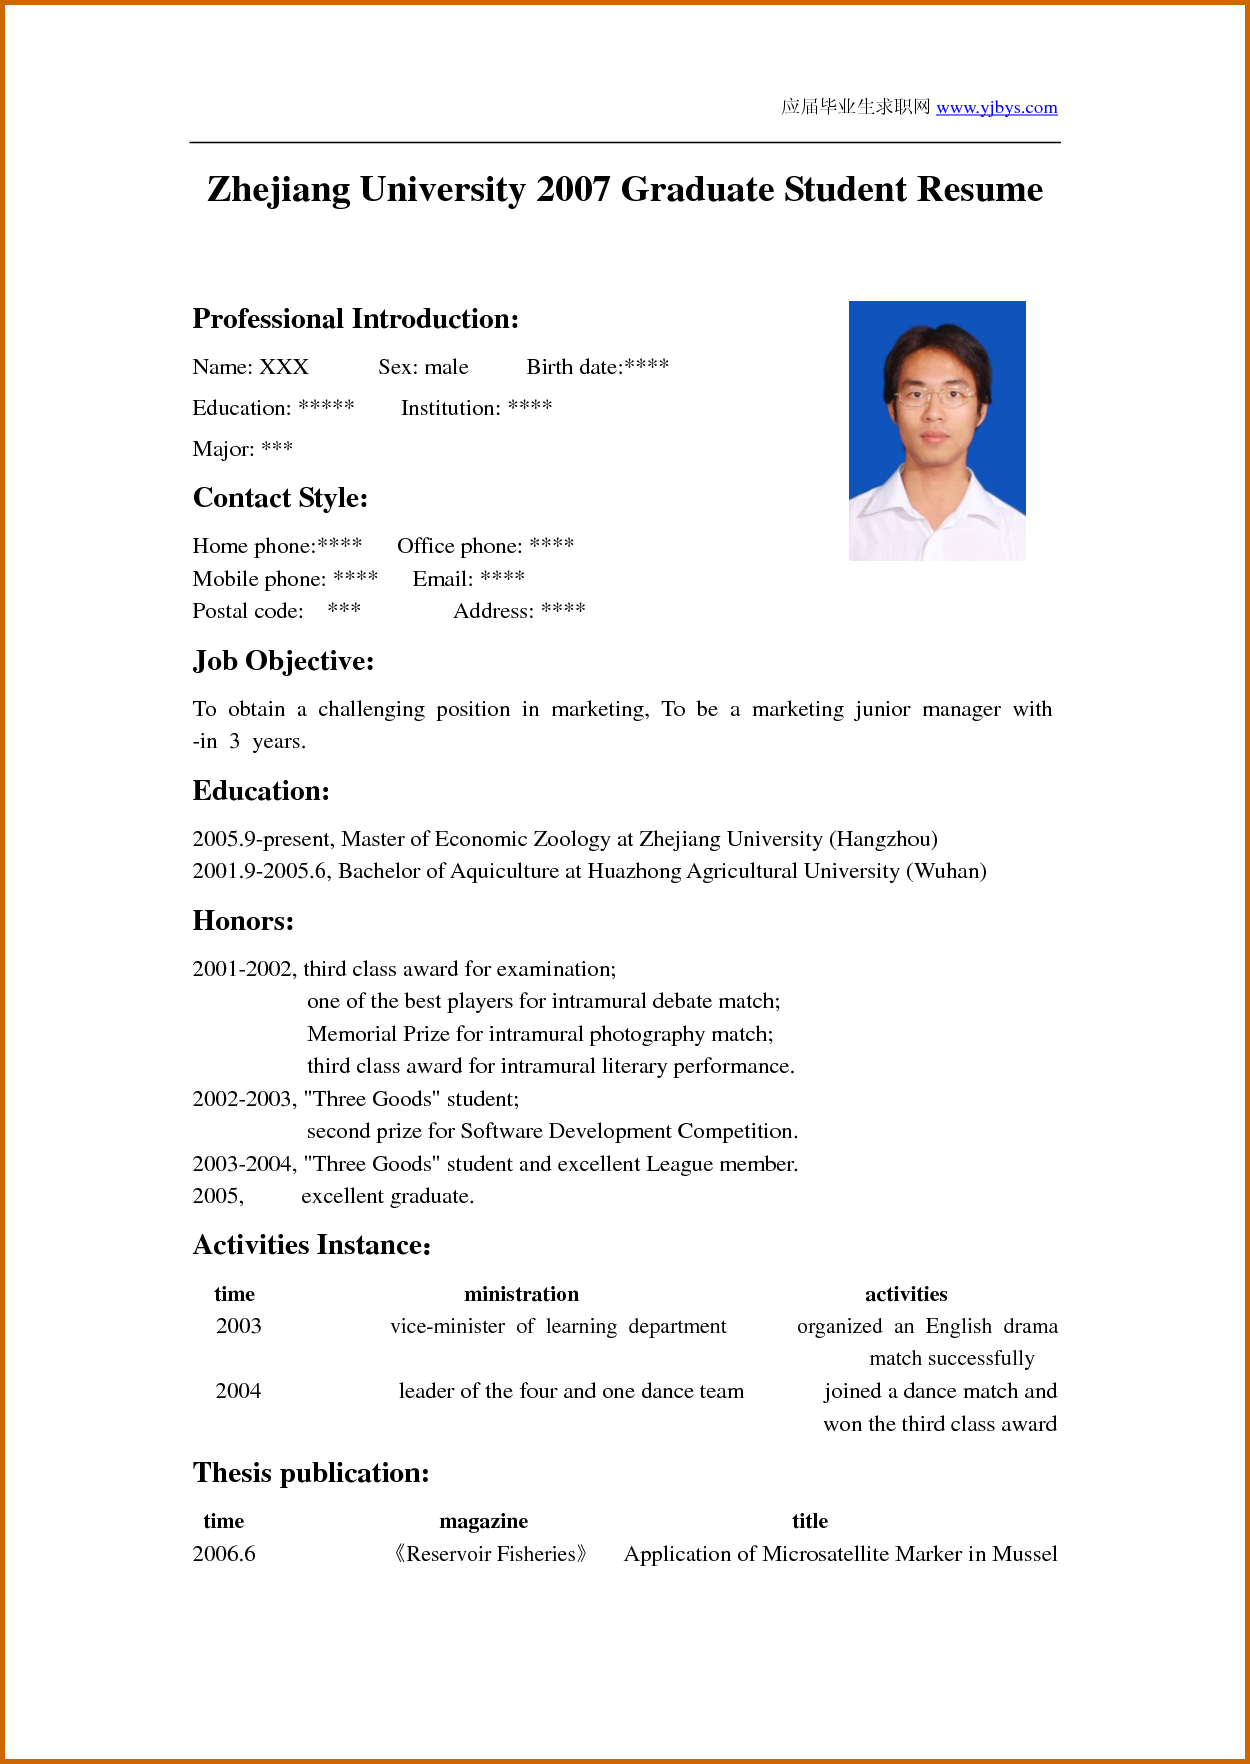 How to write a curriculum vitae for medical school